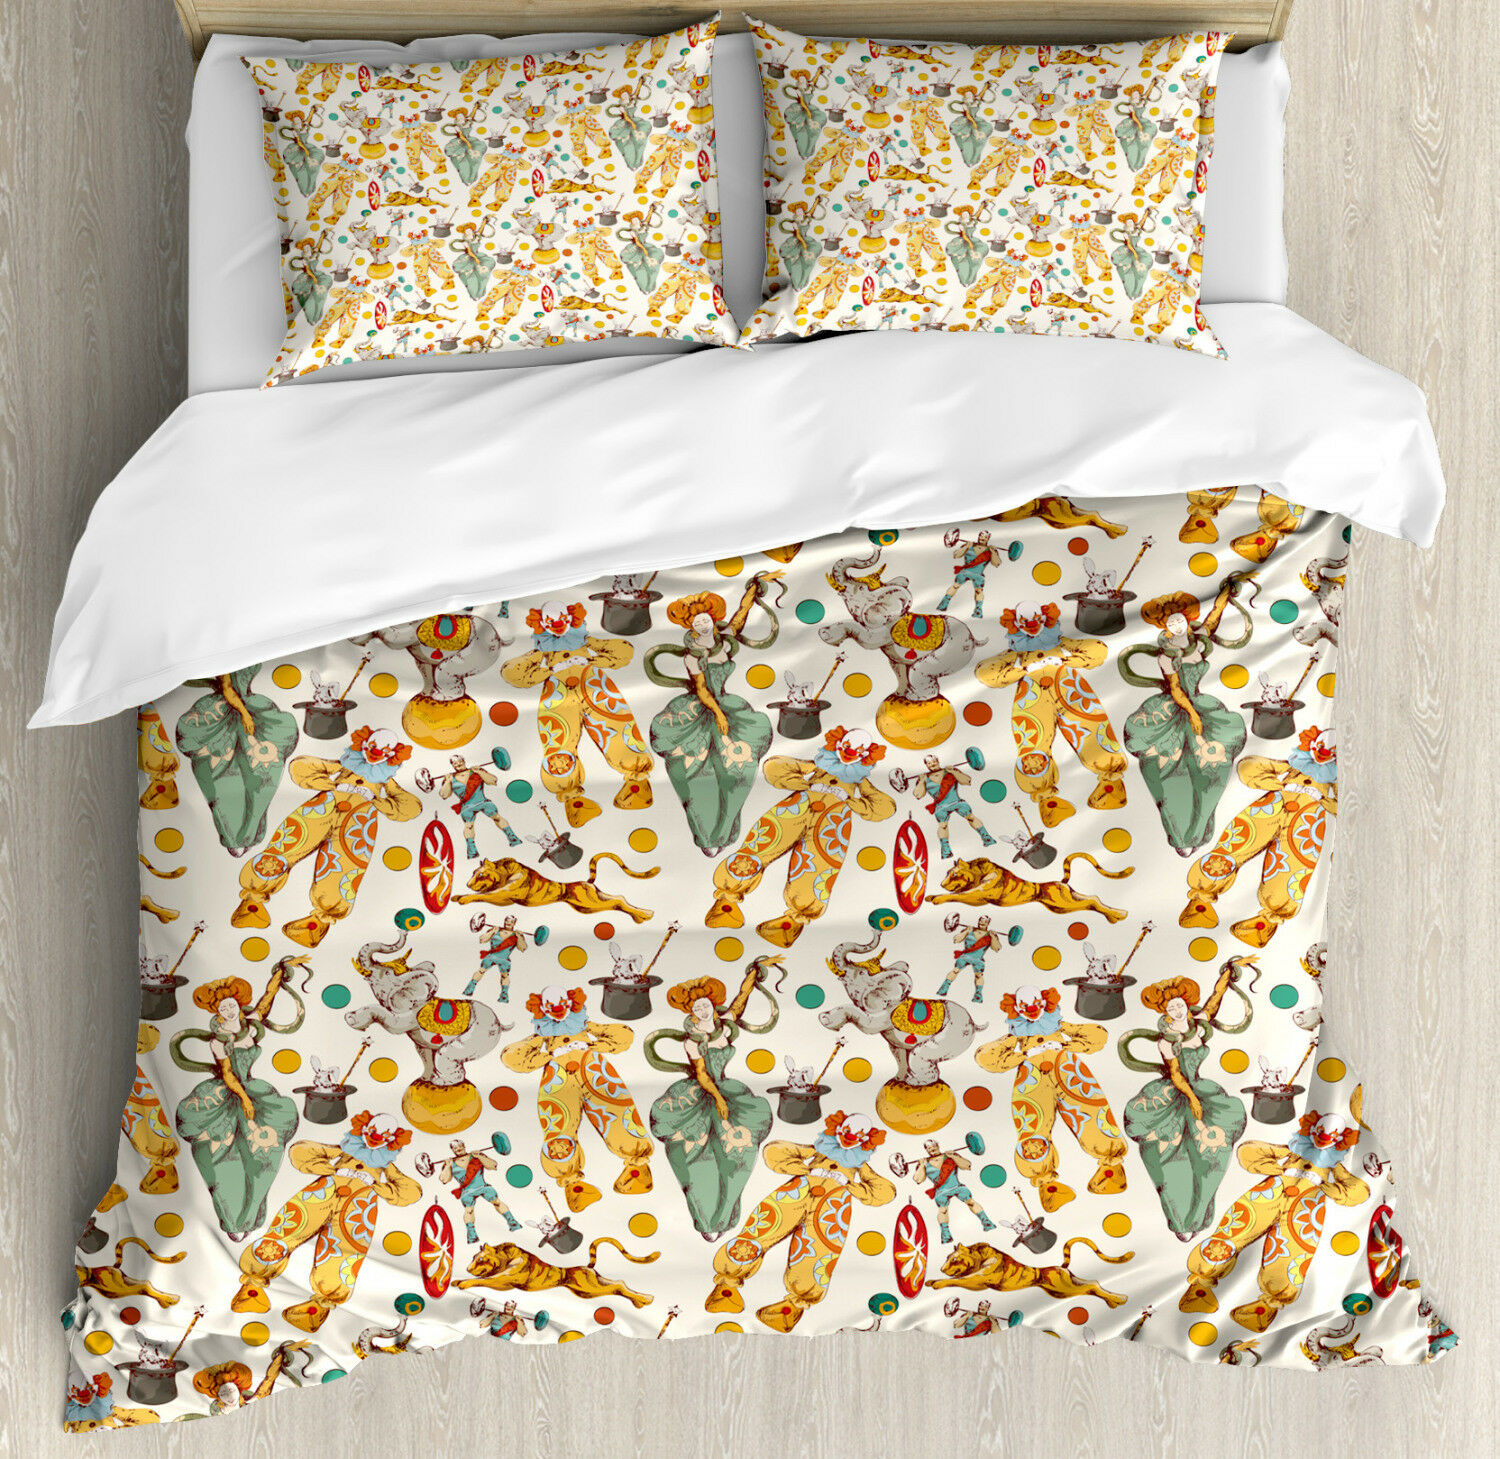 Vintage Duvet Cover Set with Pillow Shams Doodle Circus and Clown Print